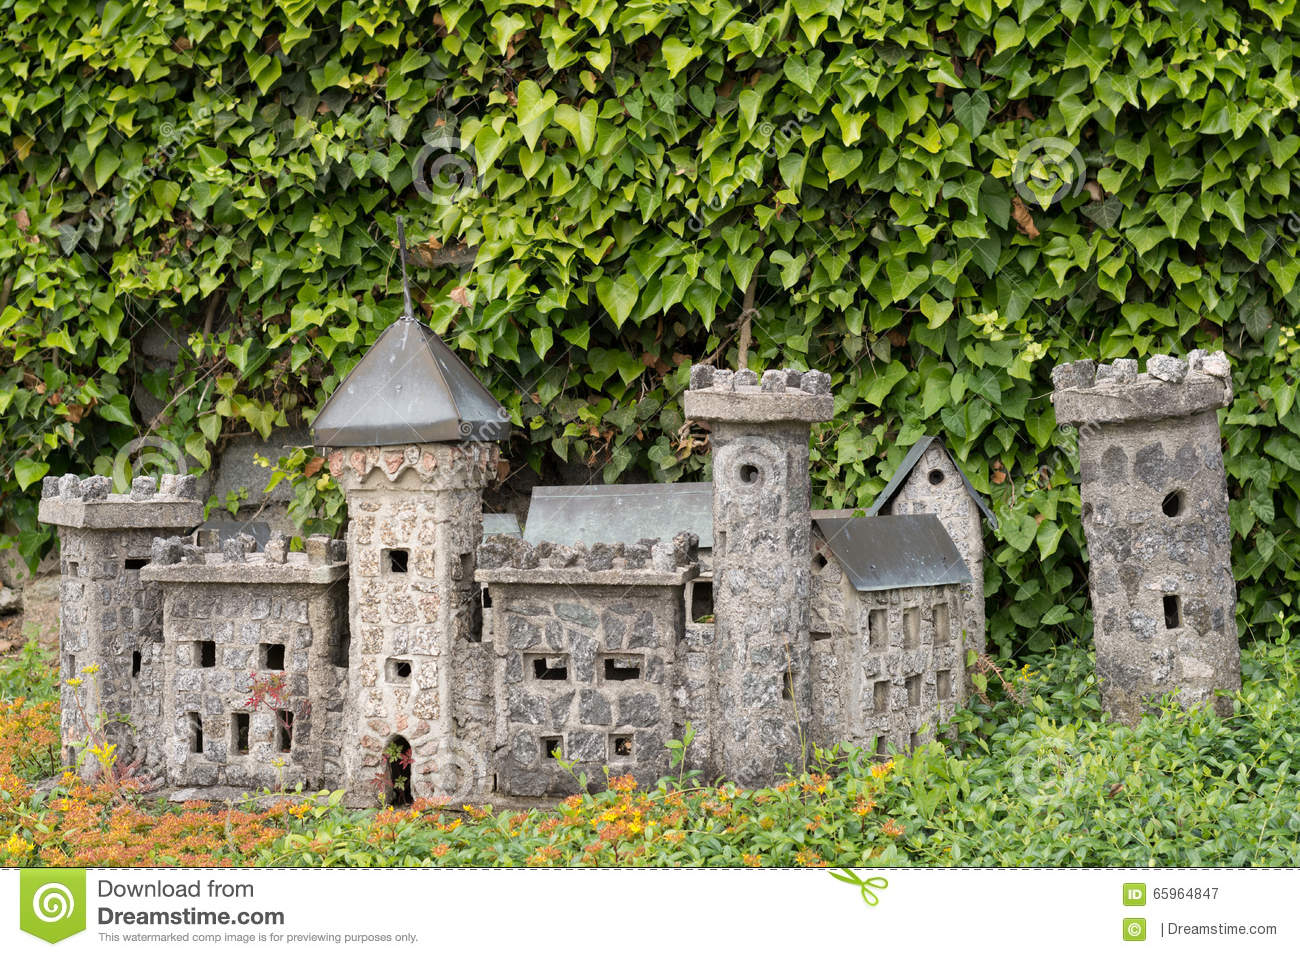 model castle as a decoration in a garden stock photo - image: 65964847